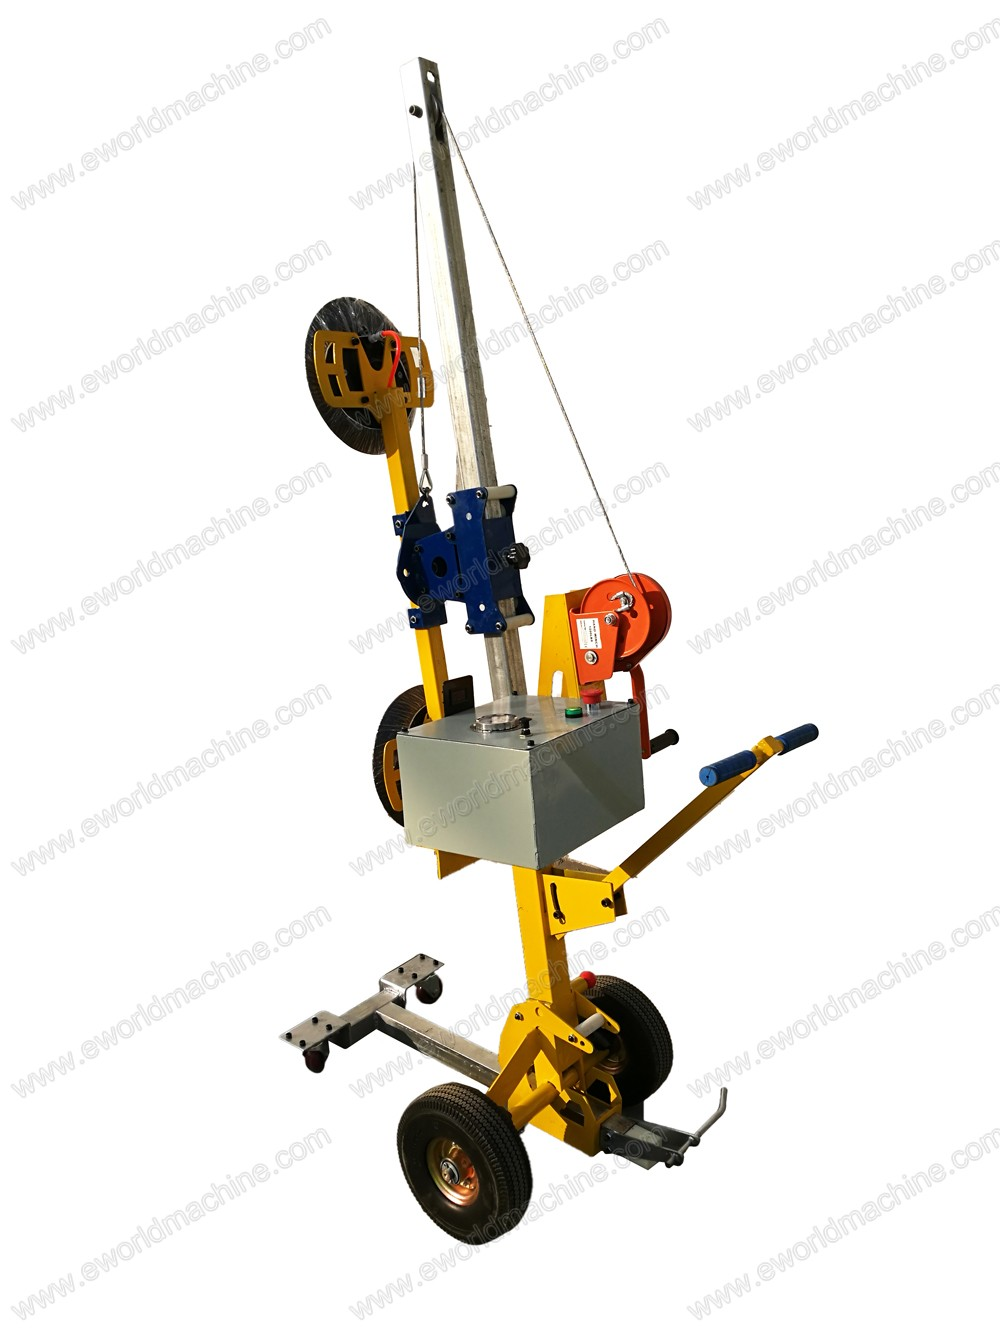 Eworld Machine standardized dual cup suction lifter company for sale-1